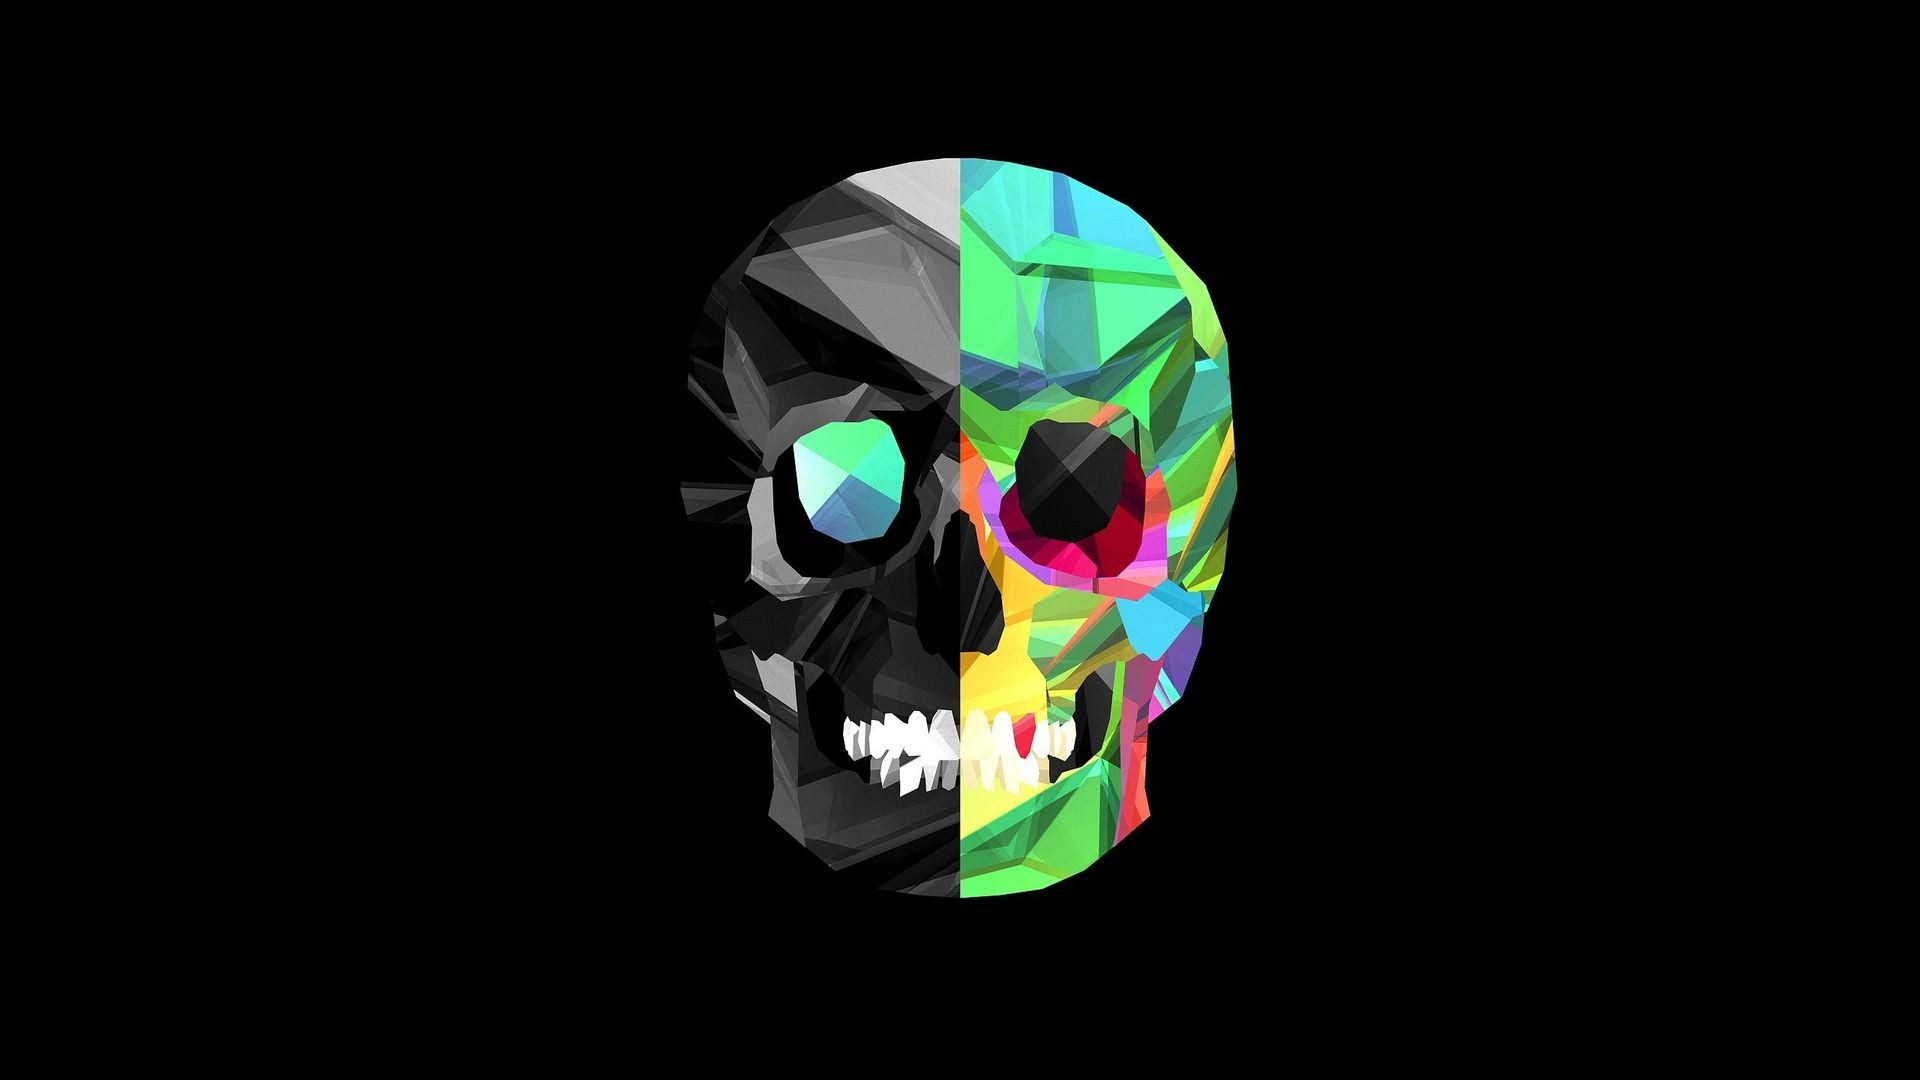 1920x1080 Awesome Skull Backgrounds 1680×1050 Awesome skull backgrounds (43 Wallpapers)  | Adorable Wallpapers